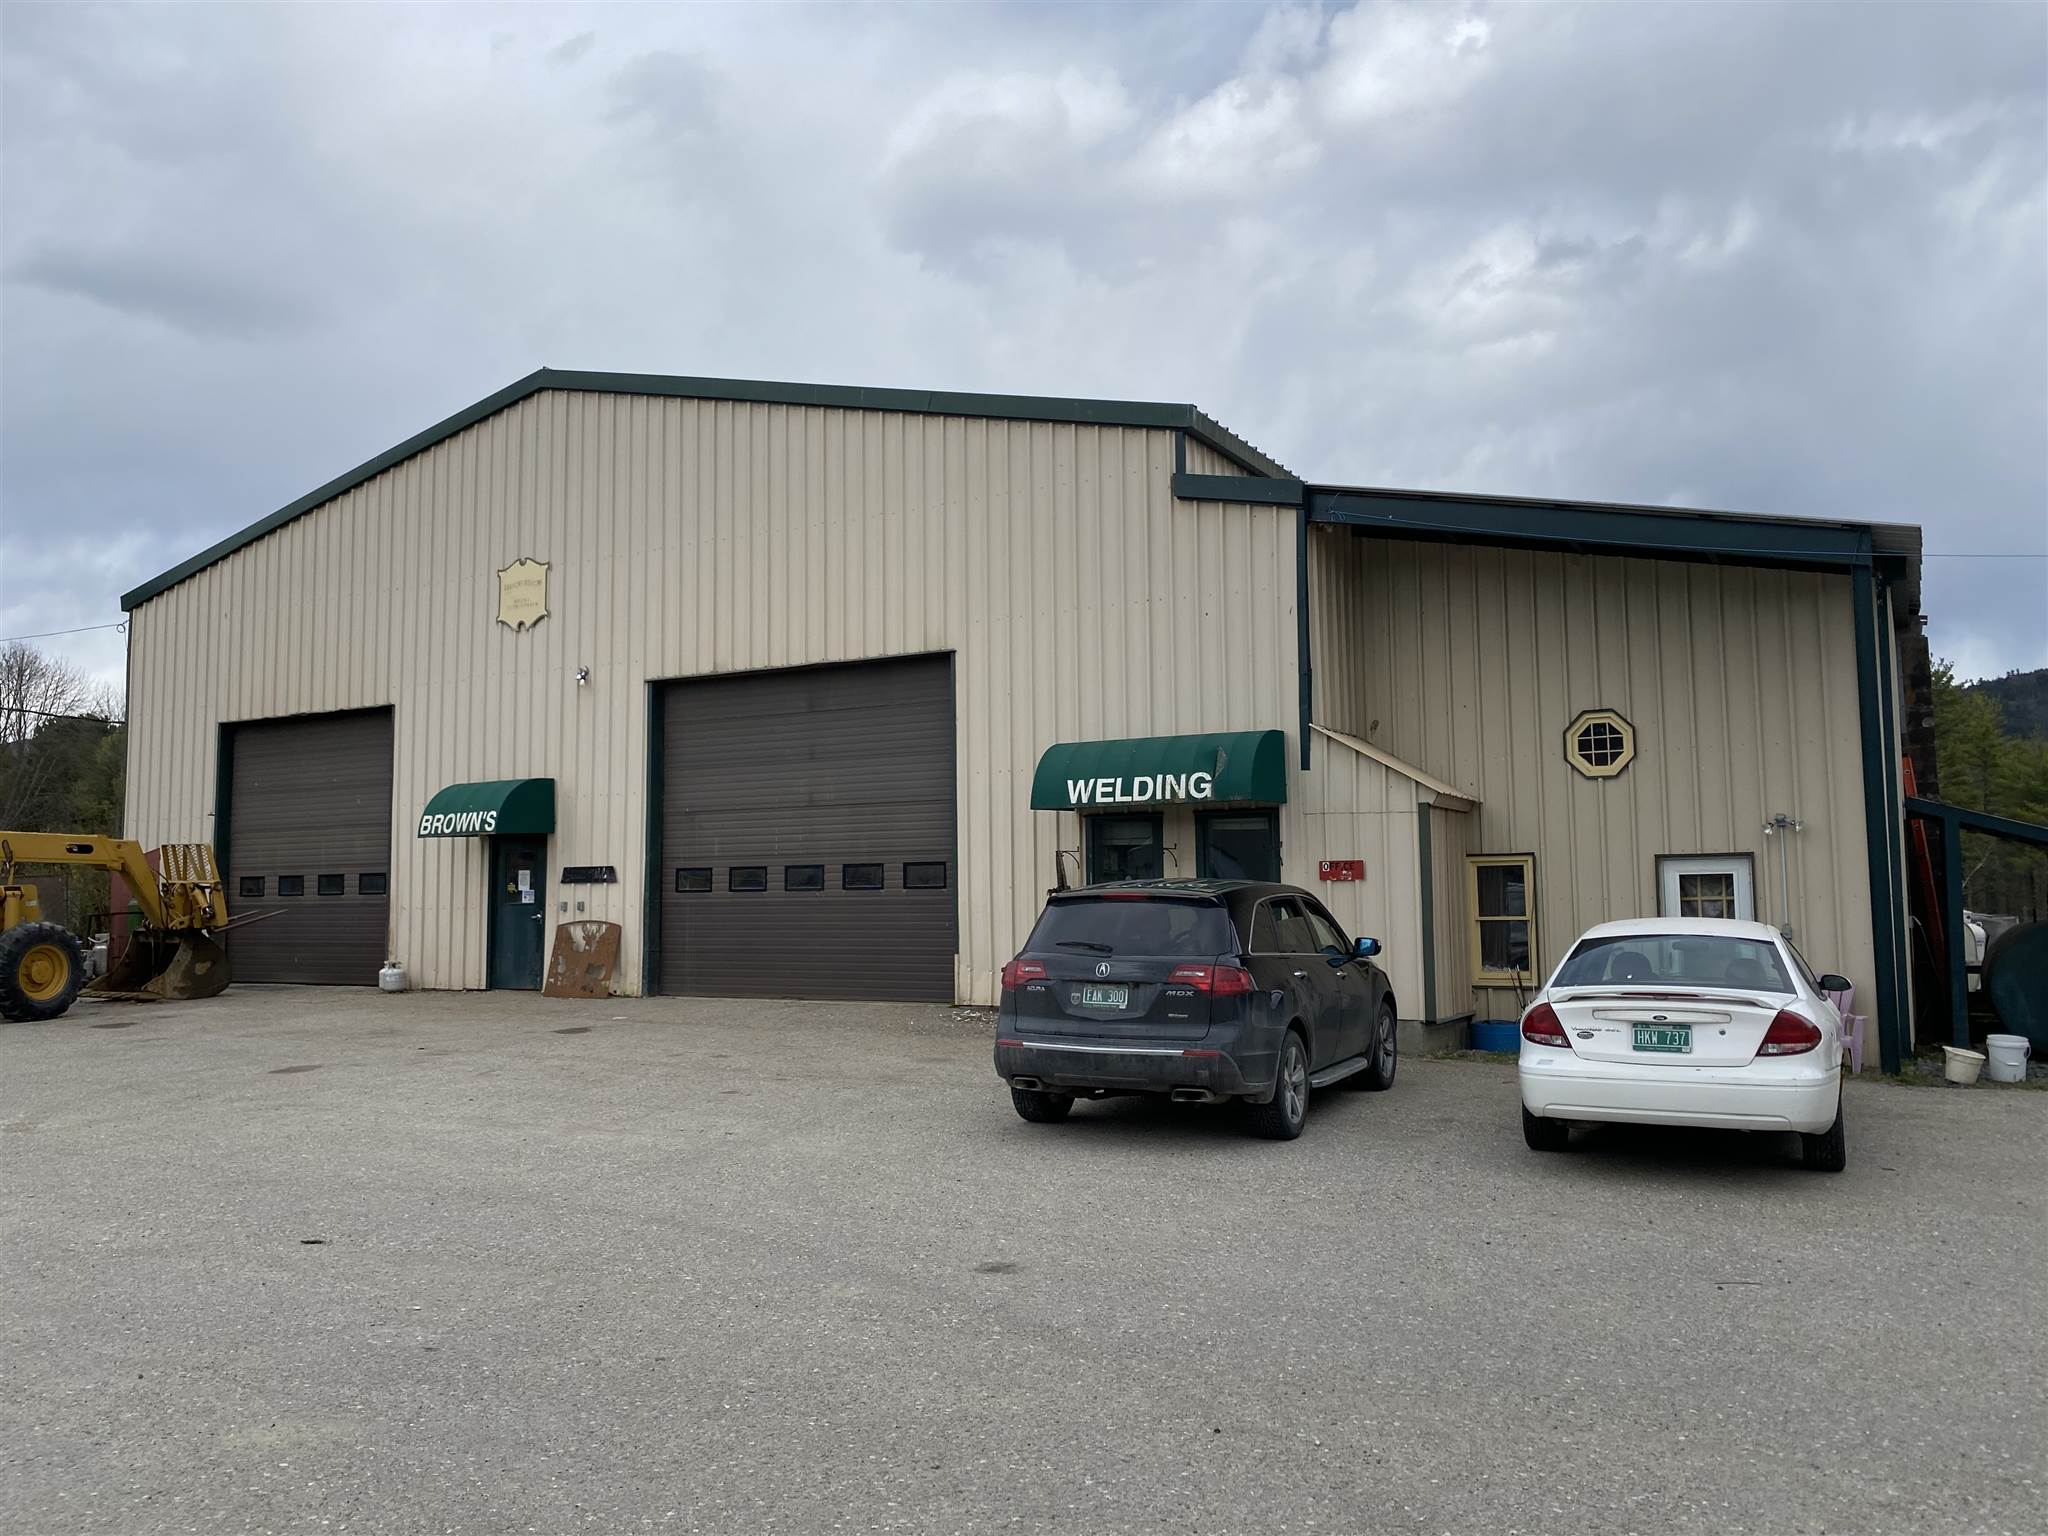 """Ready to start or grow your business? This space is extremely flexible and is set up to get the job done! Currently used as a welding and fabrication shop, it has the potential to be used for a variety of uses. Most of the space is open with 20' ceilings. It has an office space that can easily accommodate 3-4 people. Owner is willing to lease the space and equipment for a similar business or remove equipment if needed for an entirely new use. He will also consider leasing a portion of the space if needed. The available space is approximately 6,300 sf and can be leased for $6/sf or $3,150/month NNN.  The building features: - 3 Phase power 480 Amp 400 Amp Service - 5 ton bridge crane - 3 ton bridge crane - 1 ton bridge crane - Waste oil heat - Outdoor wood boiler - 14' x 14' overhead door - 14' x 16' overhead door -Air quality """"smoke eaters"""" - 2  Welding Equipment that is not included in the lease rate listed above, but could be negotiated includes: - 225 Ton Press Brake 12' Long - 12' Shearer (up to 1/2"""" plate) - 45 Ton iron worker - 95 ton iron worker - 8' 3/8th plate rolling machine - CNC Plasma Cutting Table 5x10 sheets - 10 Welders - 20 horse shop air compressor - 5 horse shop air compressor - 4' pan brake - 8' sheet metal brake - 3' plate rolling machine - Pipe rolling machine & Benders - Lathe - Healiarc welder"""